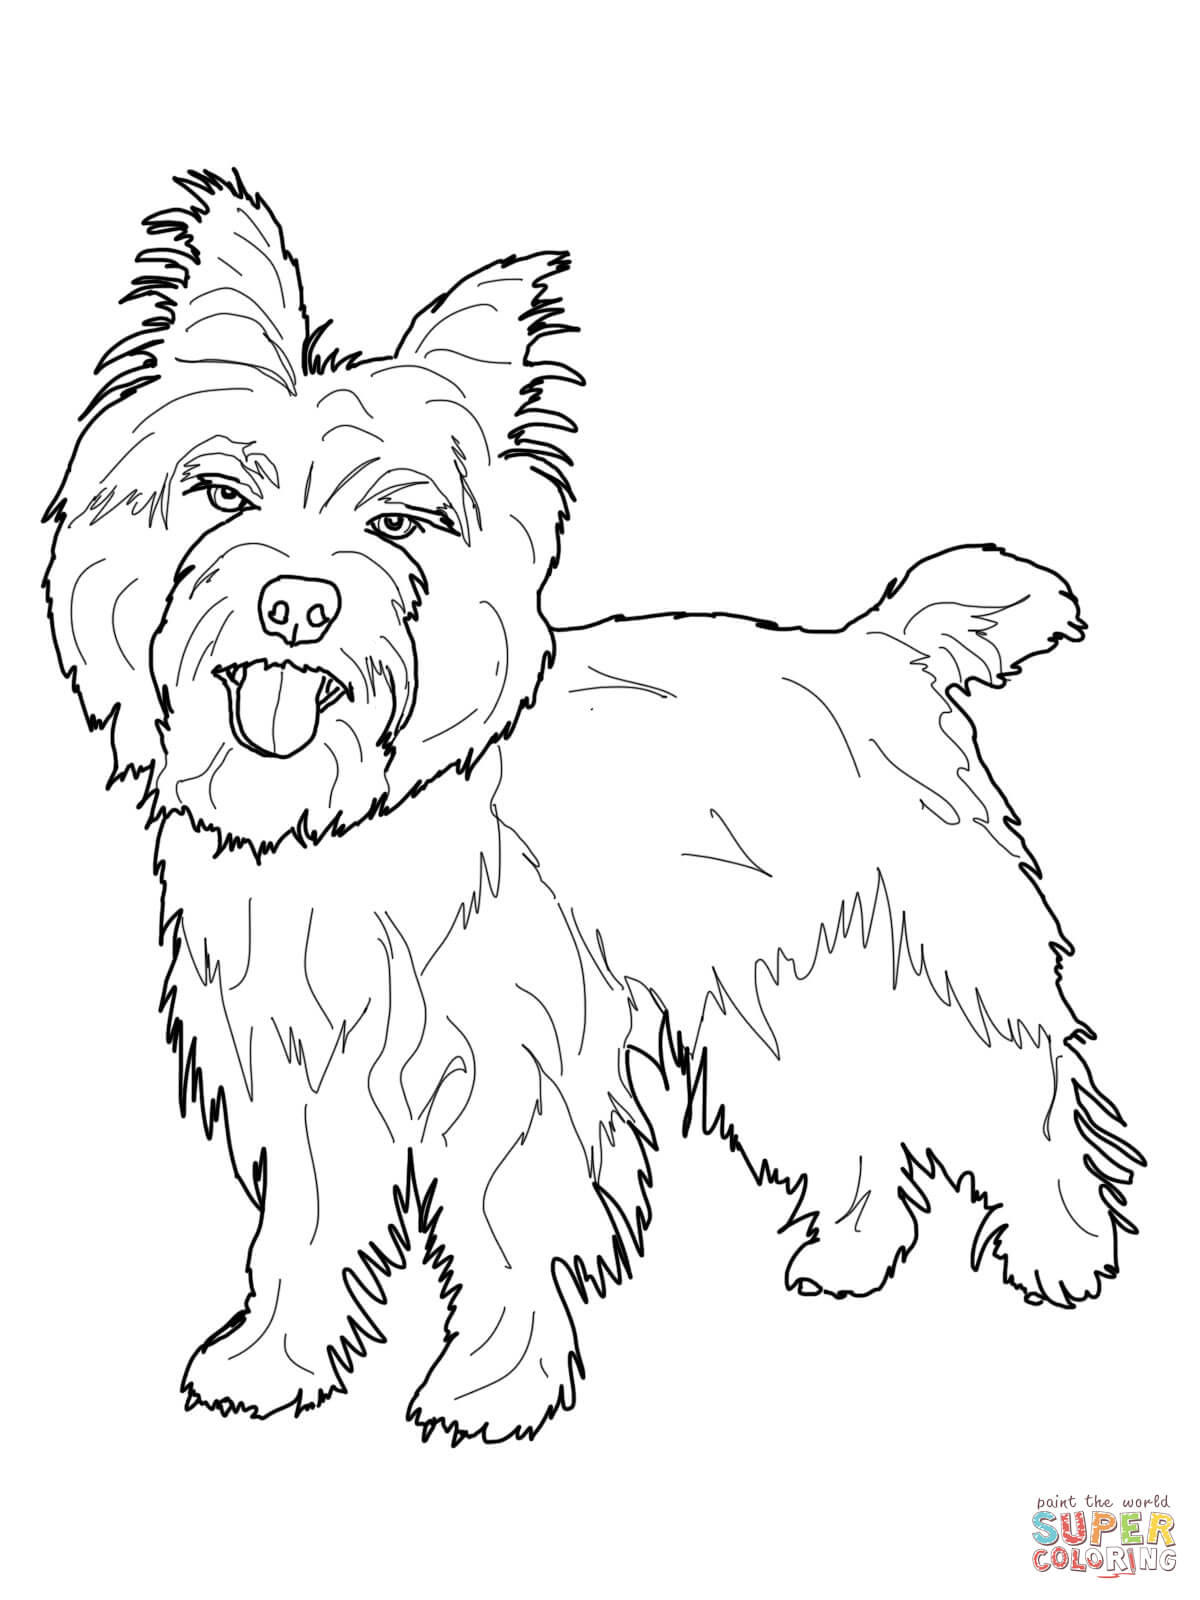 Cairn Terrier coloring page | Free Printable Coloring Pages